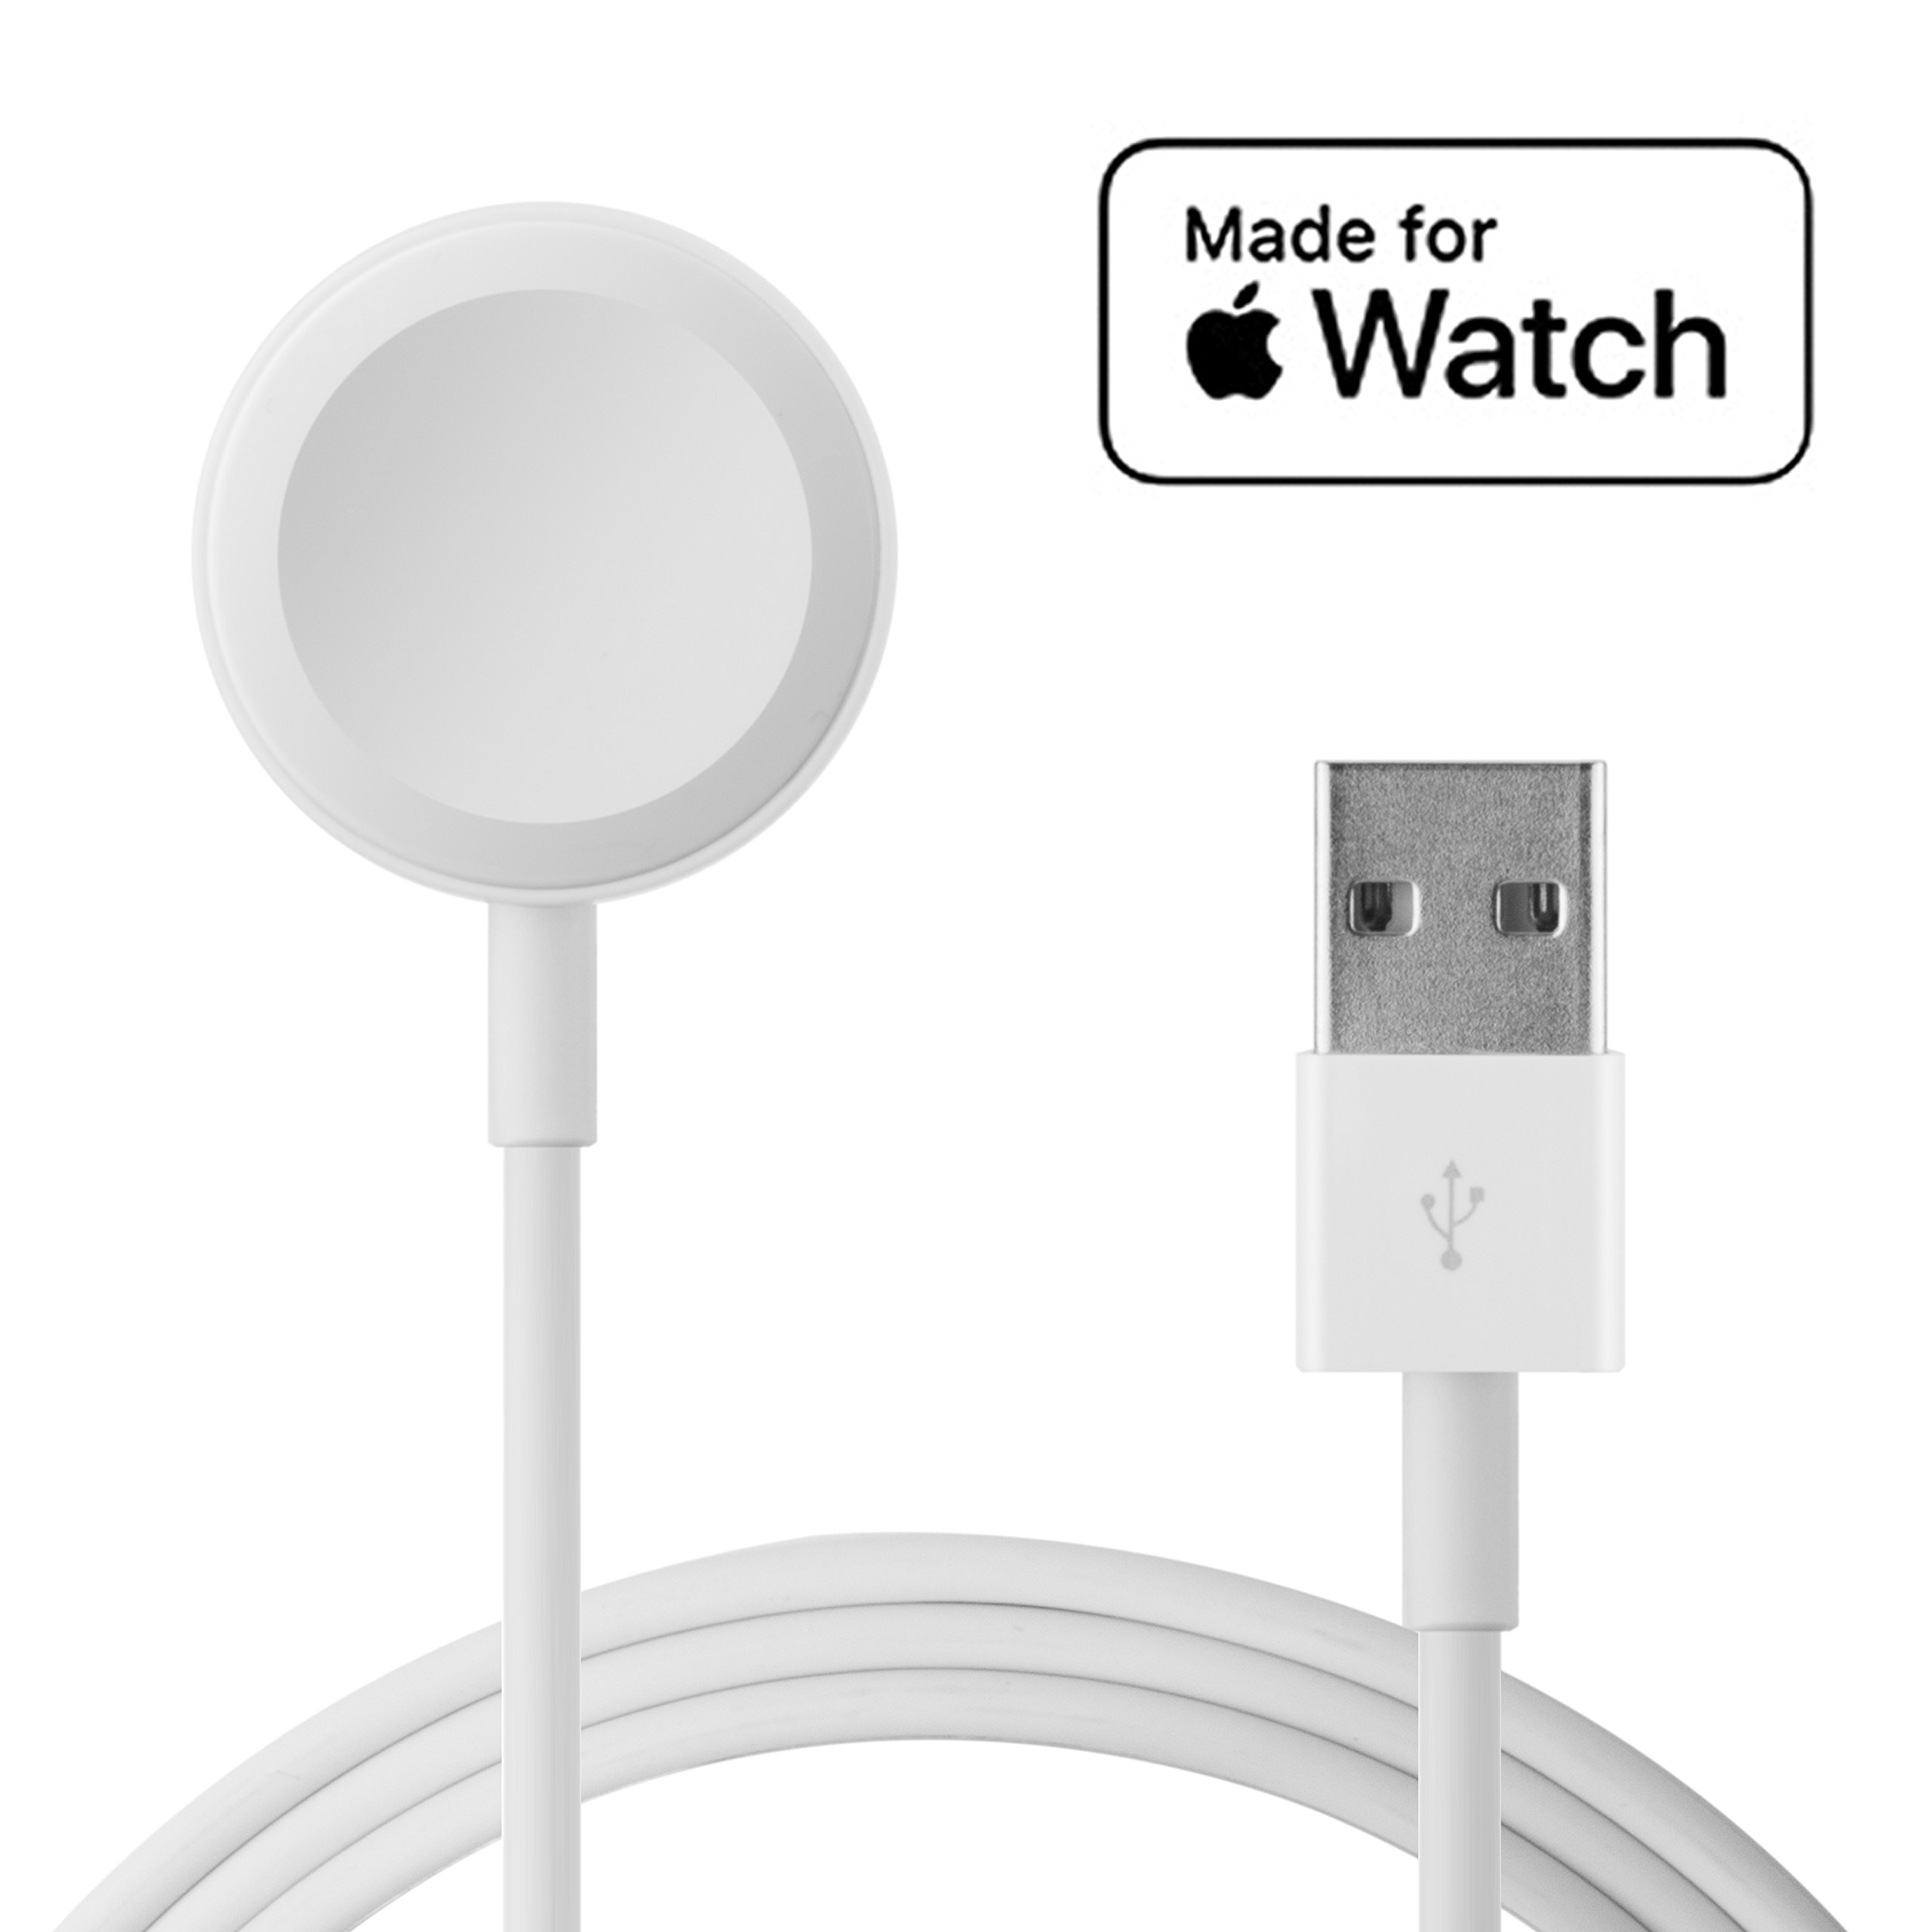 Apple Watch Charger[ Apple MFi Certified ],Ingelon Magnetic Wireless Charging Cable for iWatch 38mm & 42mm, Apple Watch Series 3 2 1(3.3ft/1M)